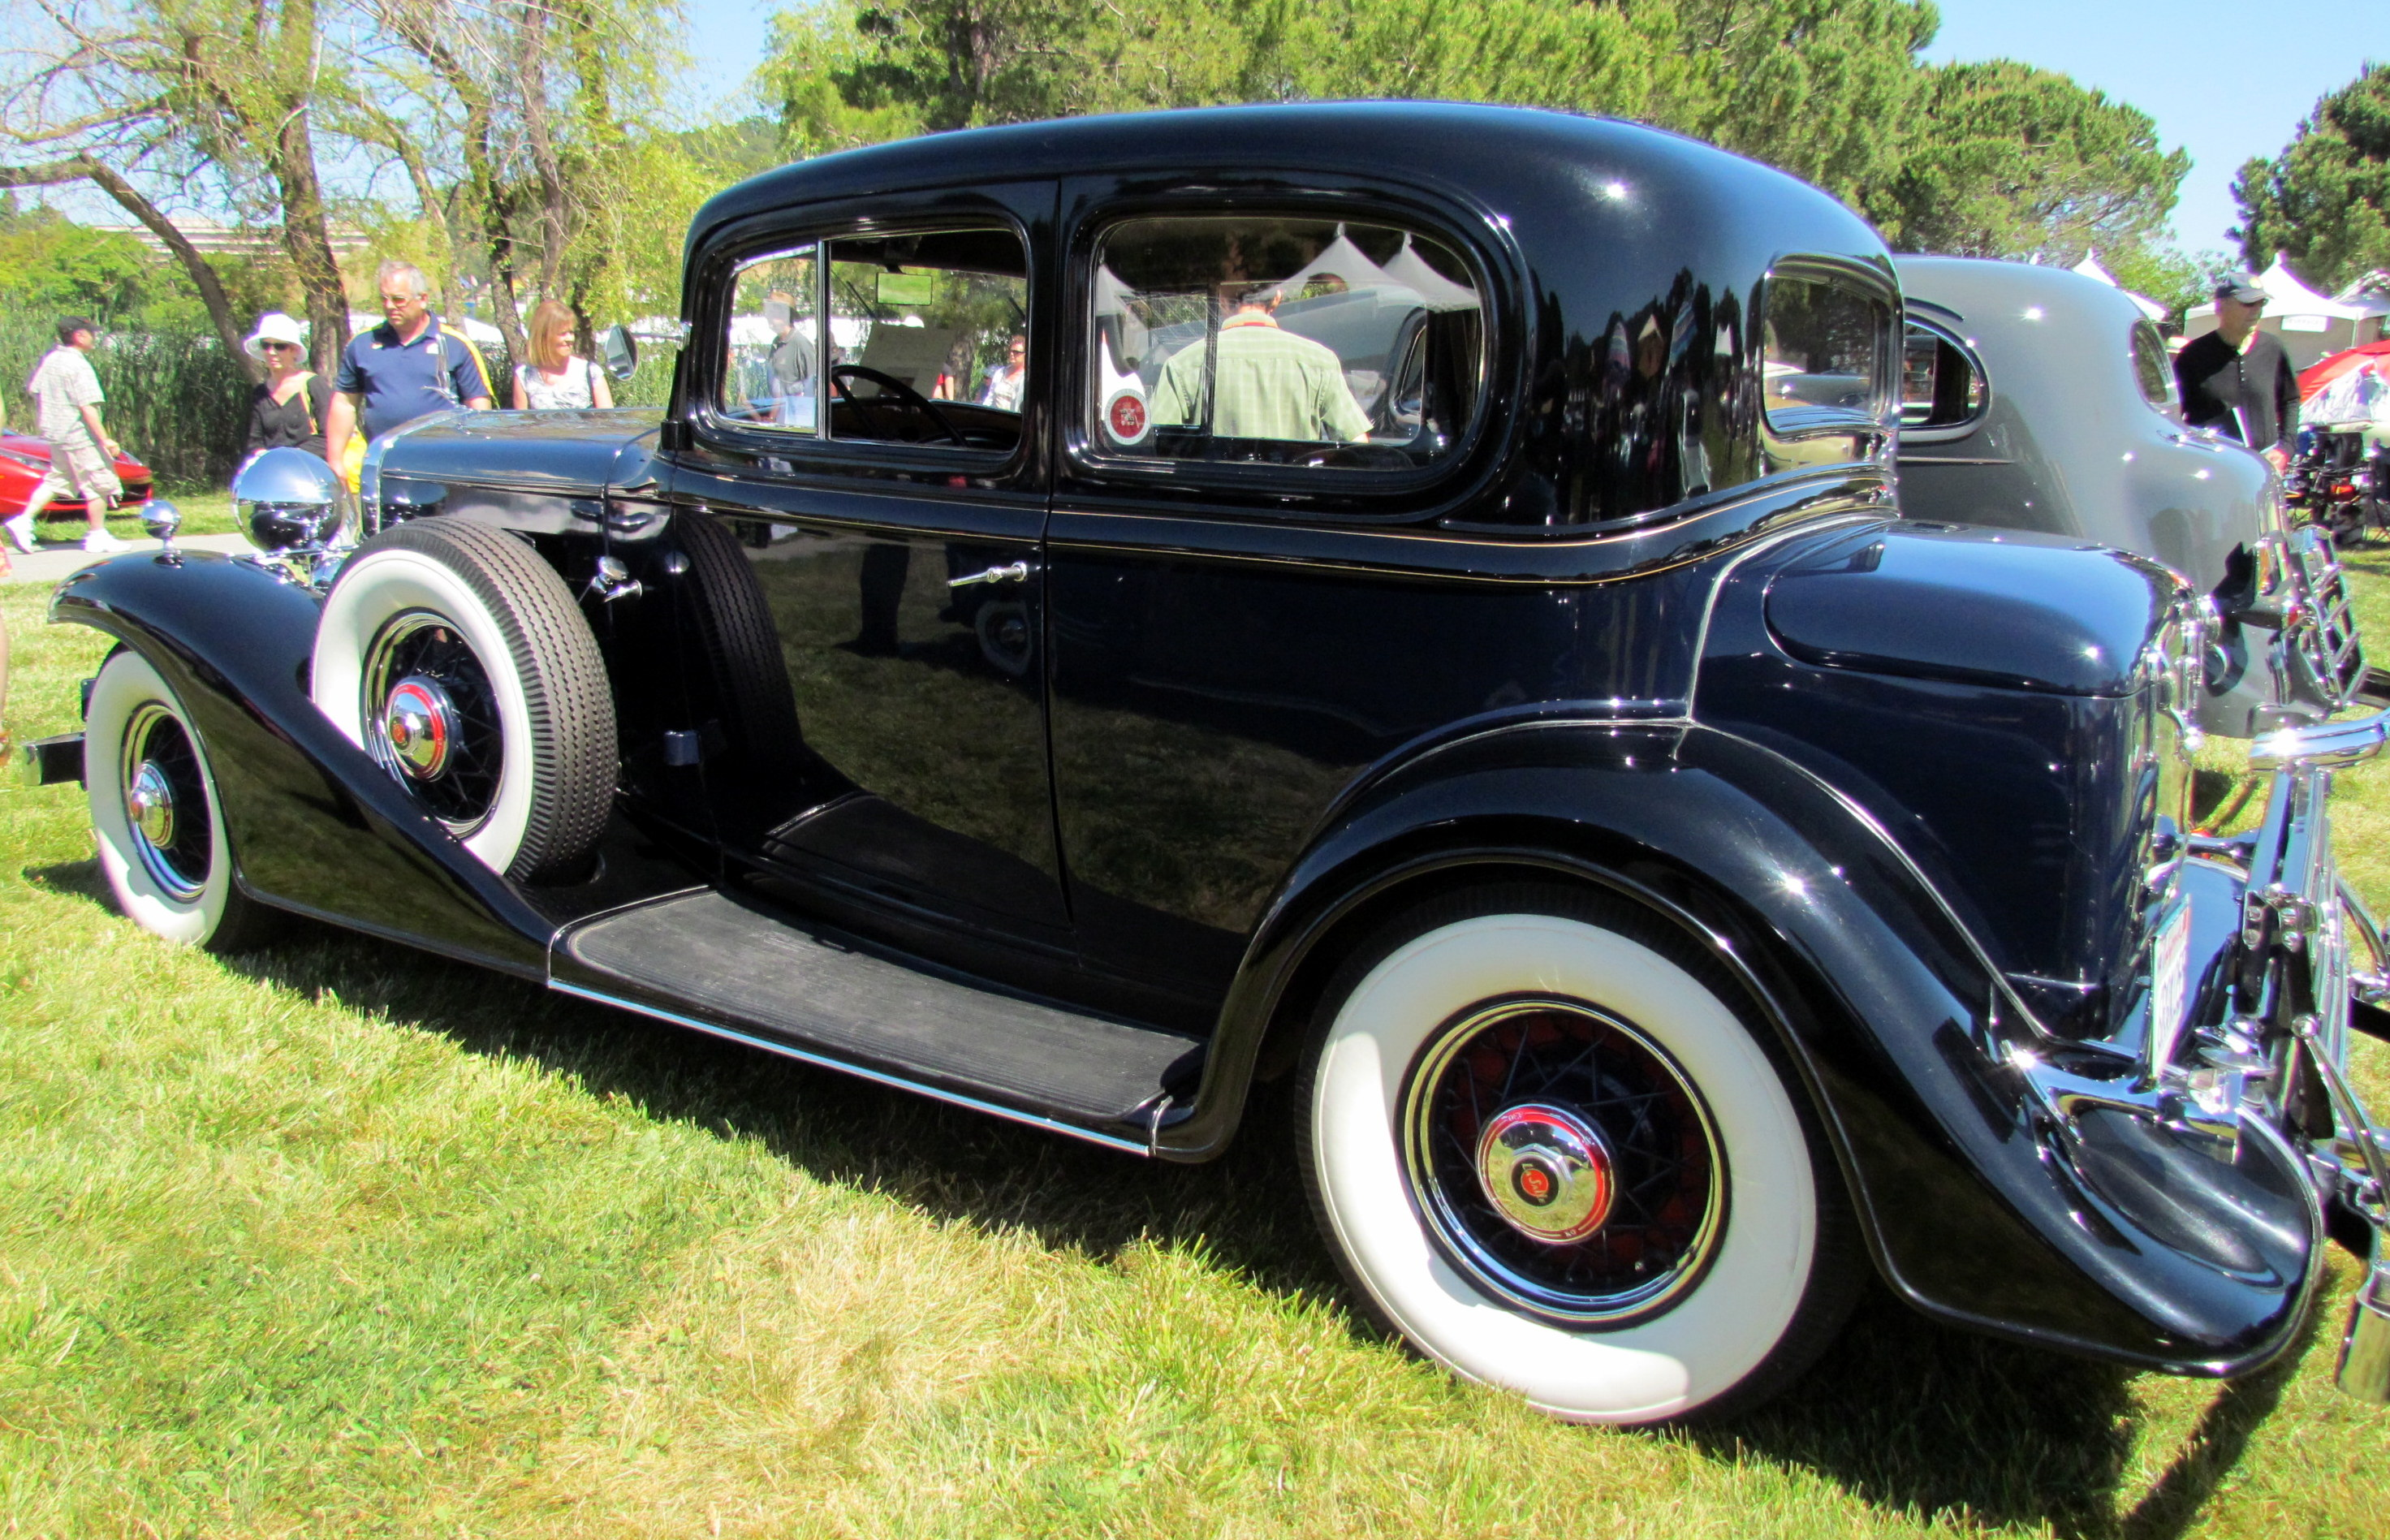 https://upload.wikimedia.org/wikipedia/commons/f/fd/1933_LaSalle_345C_Town_Coupe_%287547950456%29.jpg